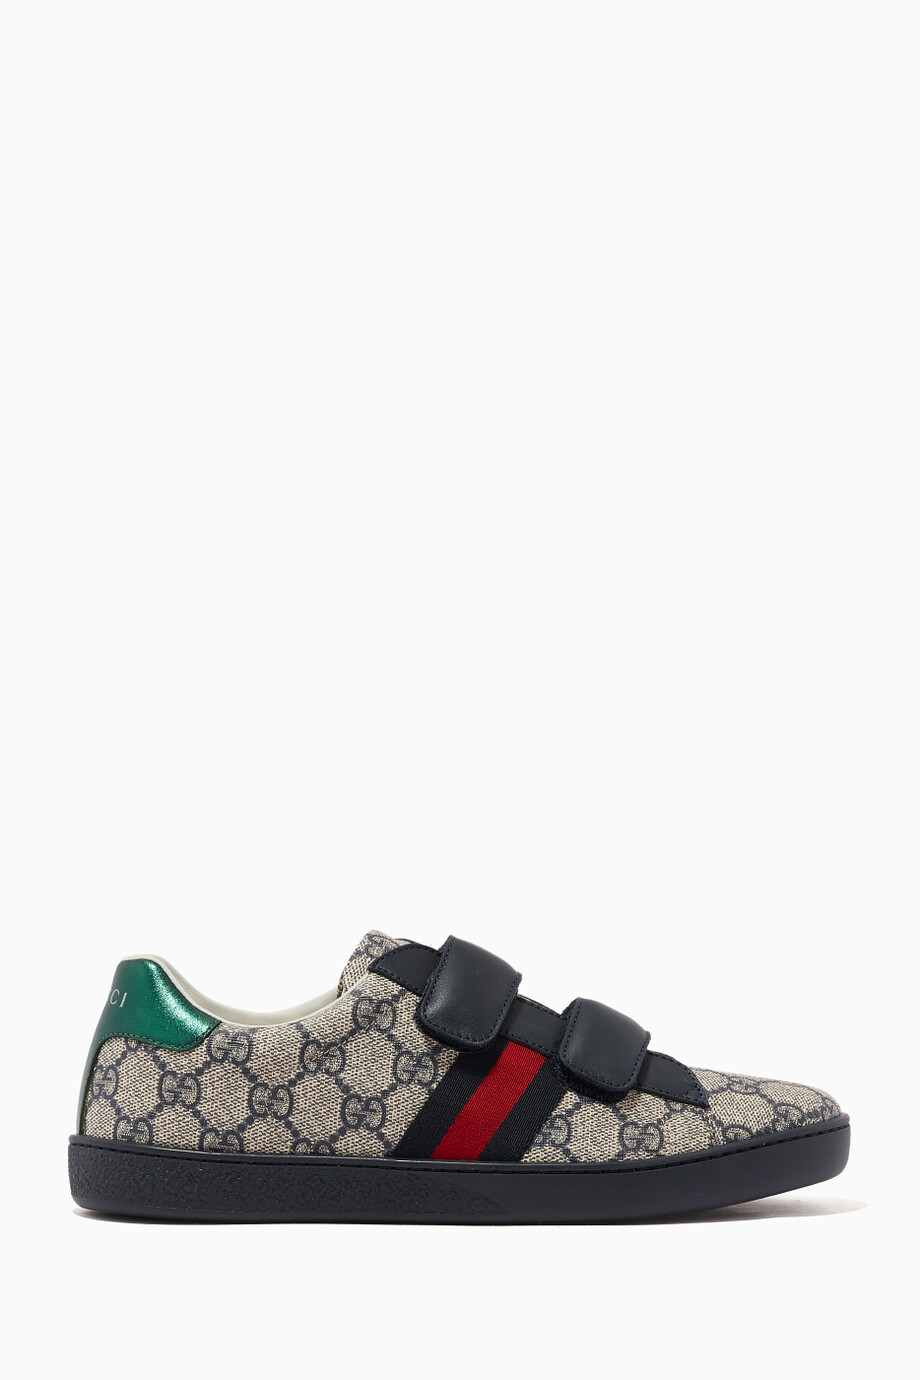 ebedf4ef913 Shop Gucci Neutral Beige Ace GG Supreme Sneakers for Kids